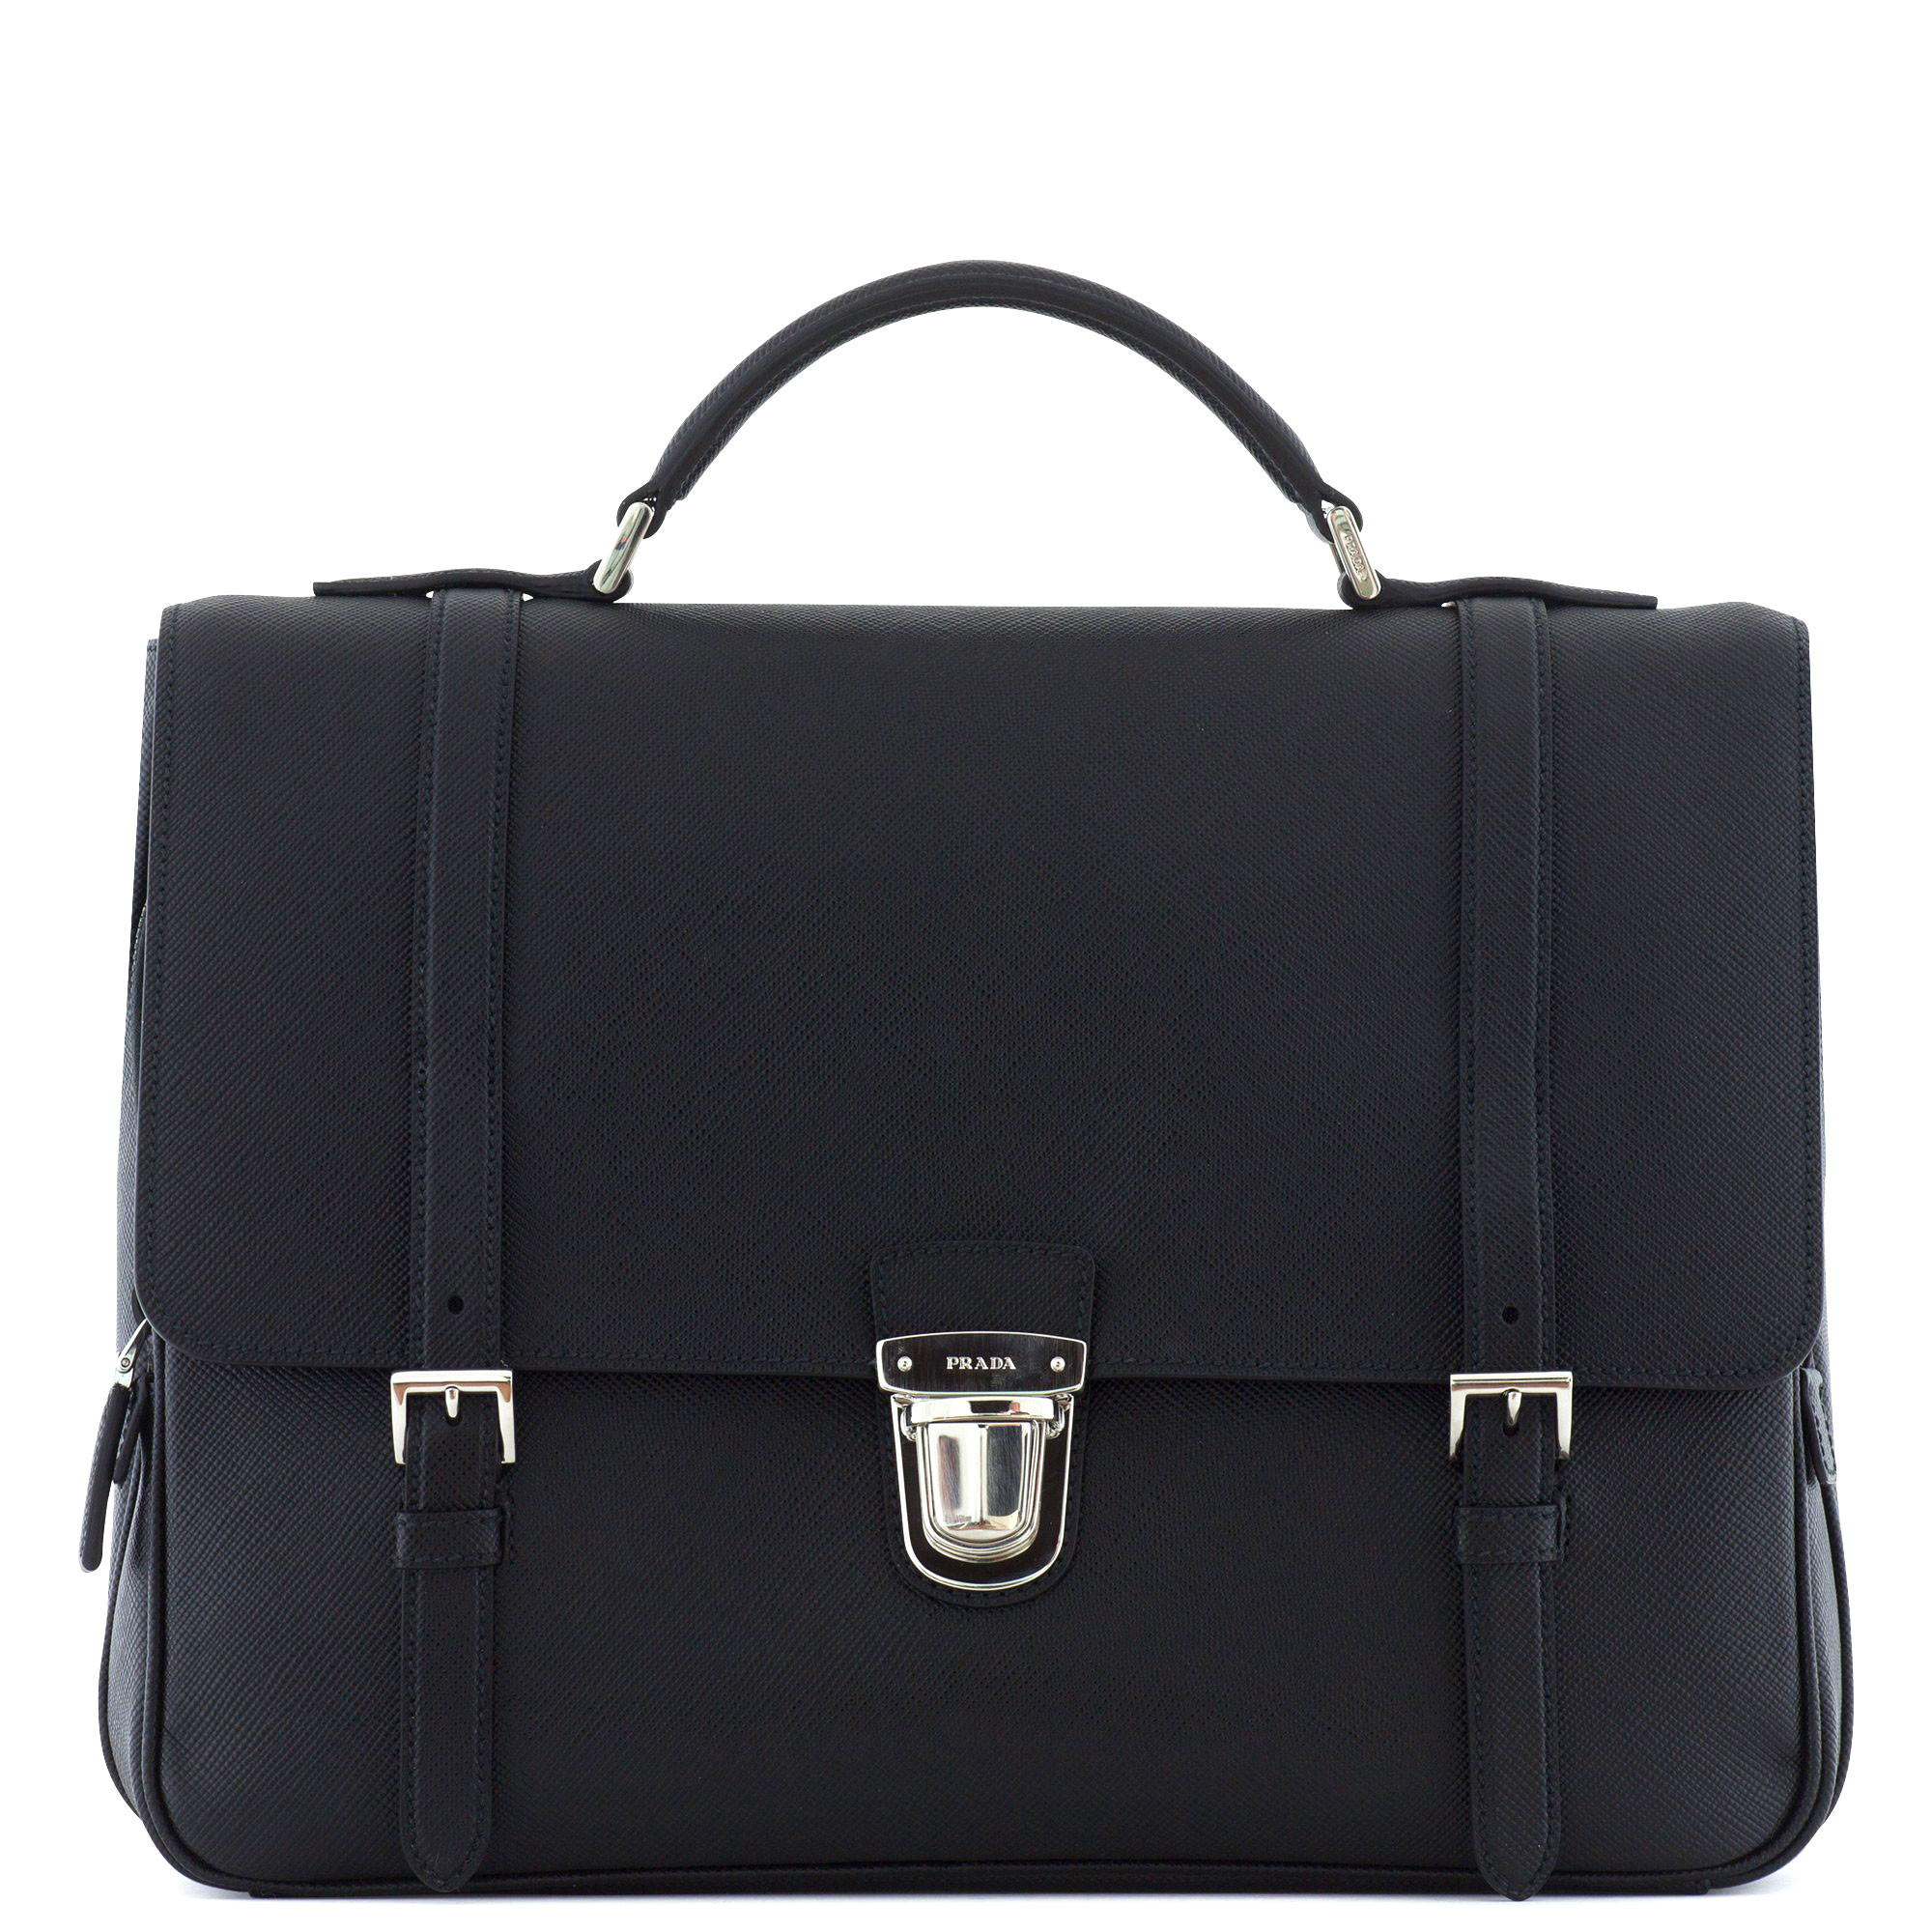 Prada Briefcase for Men | Prada Mens Travel Bag | Prada Briefcase